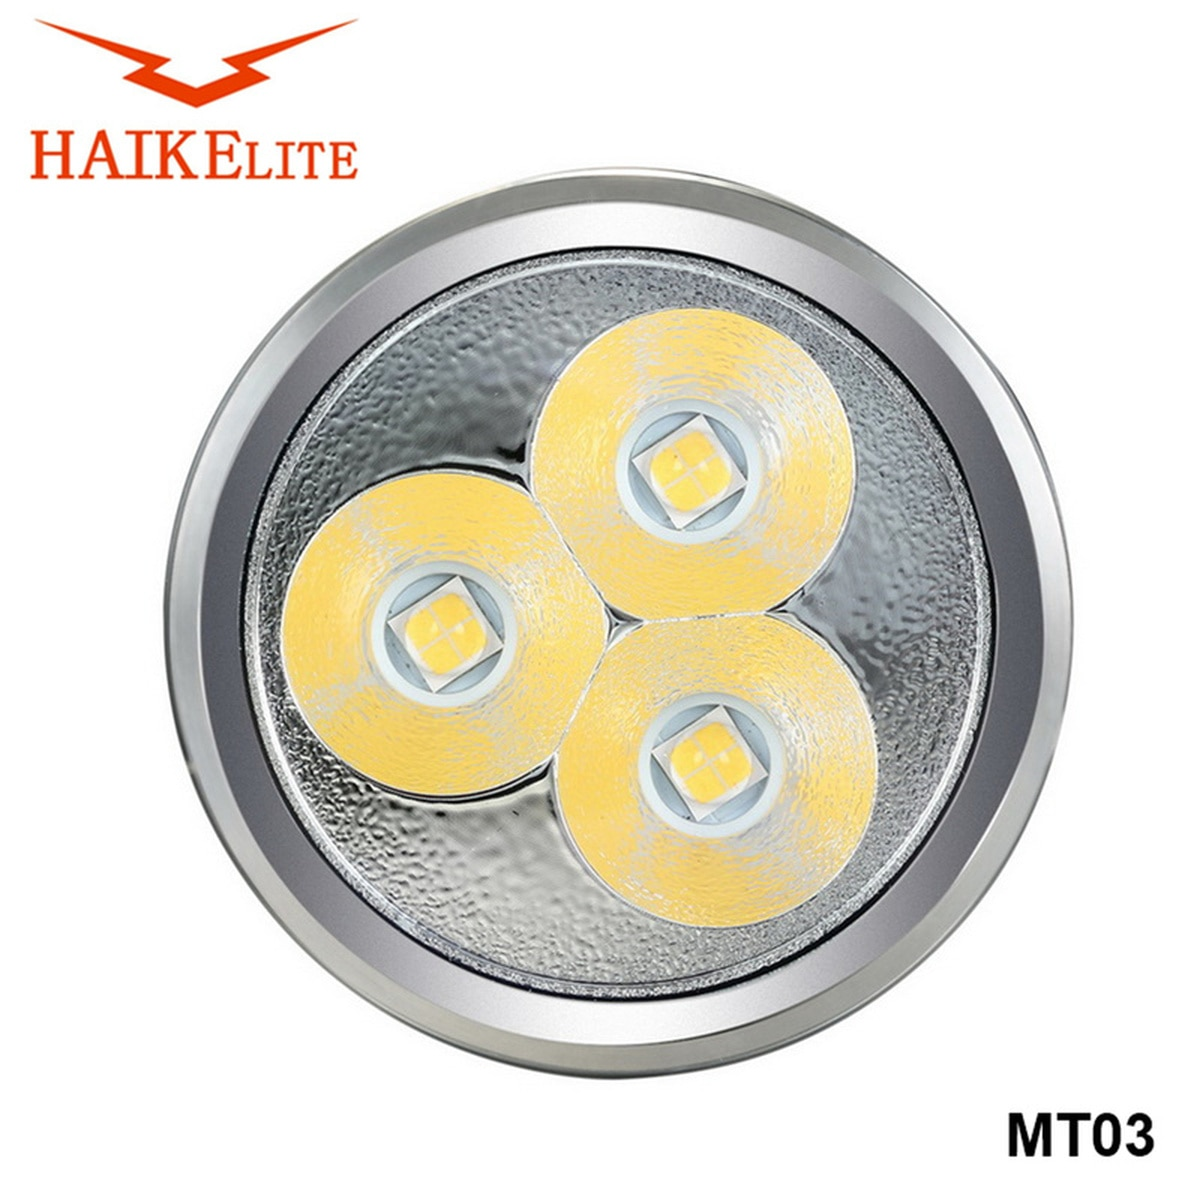 21,000 Lumens LED Flashlight Haikelite MT03 CREE XHP70.2 Rechargeable 18650 Waterproof Outdoor Camping Lamp Torch Light enlarge